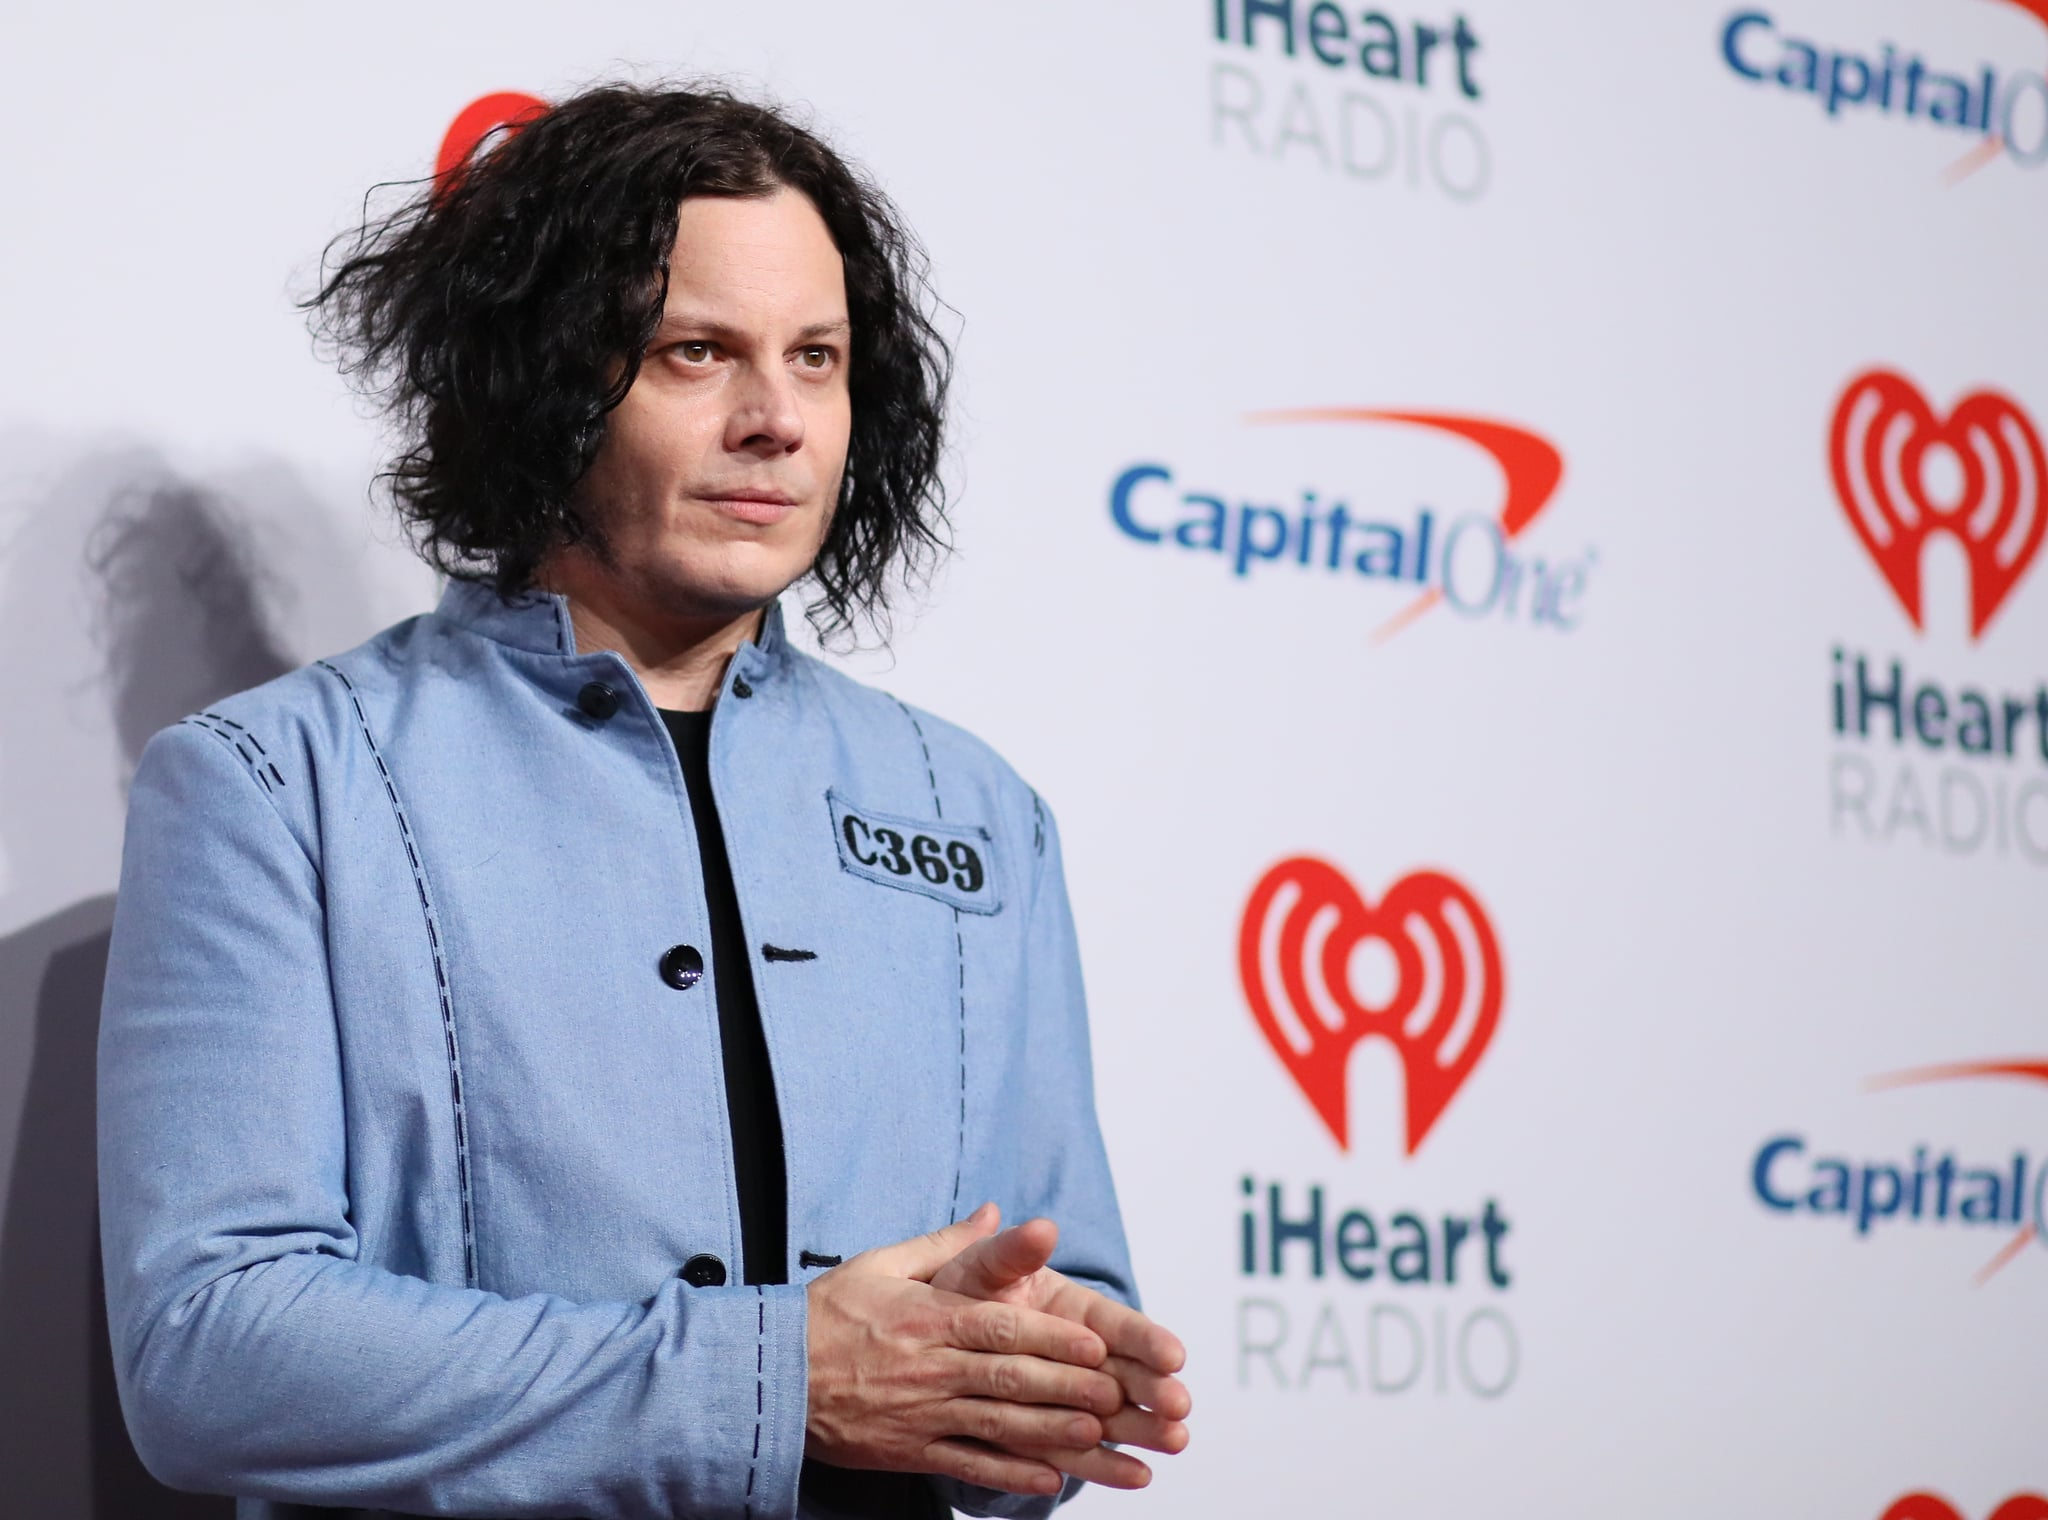 LAS VEGAS, CA - SEPTEMBER 21: Jack White attends the 2018 iHeartRadio Music Festival at T-Mobile Arena on September 21, 2018 in Las Vegas, Nevada. (Photo by JB Lacroix/WireImage)